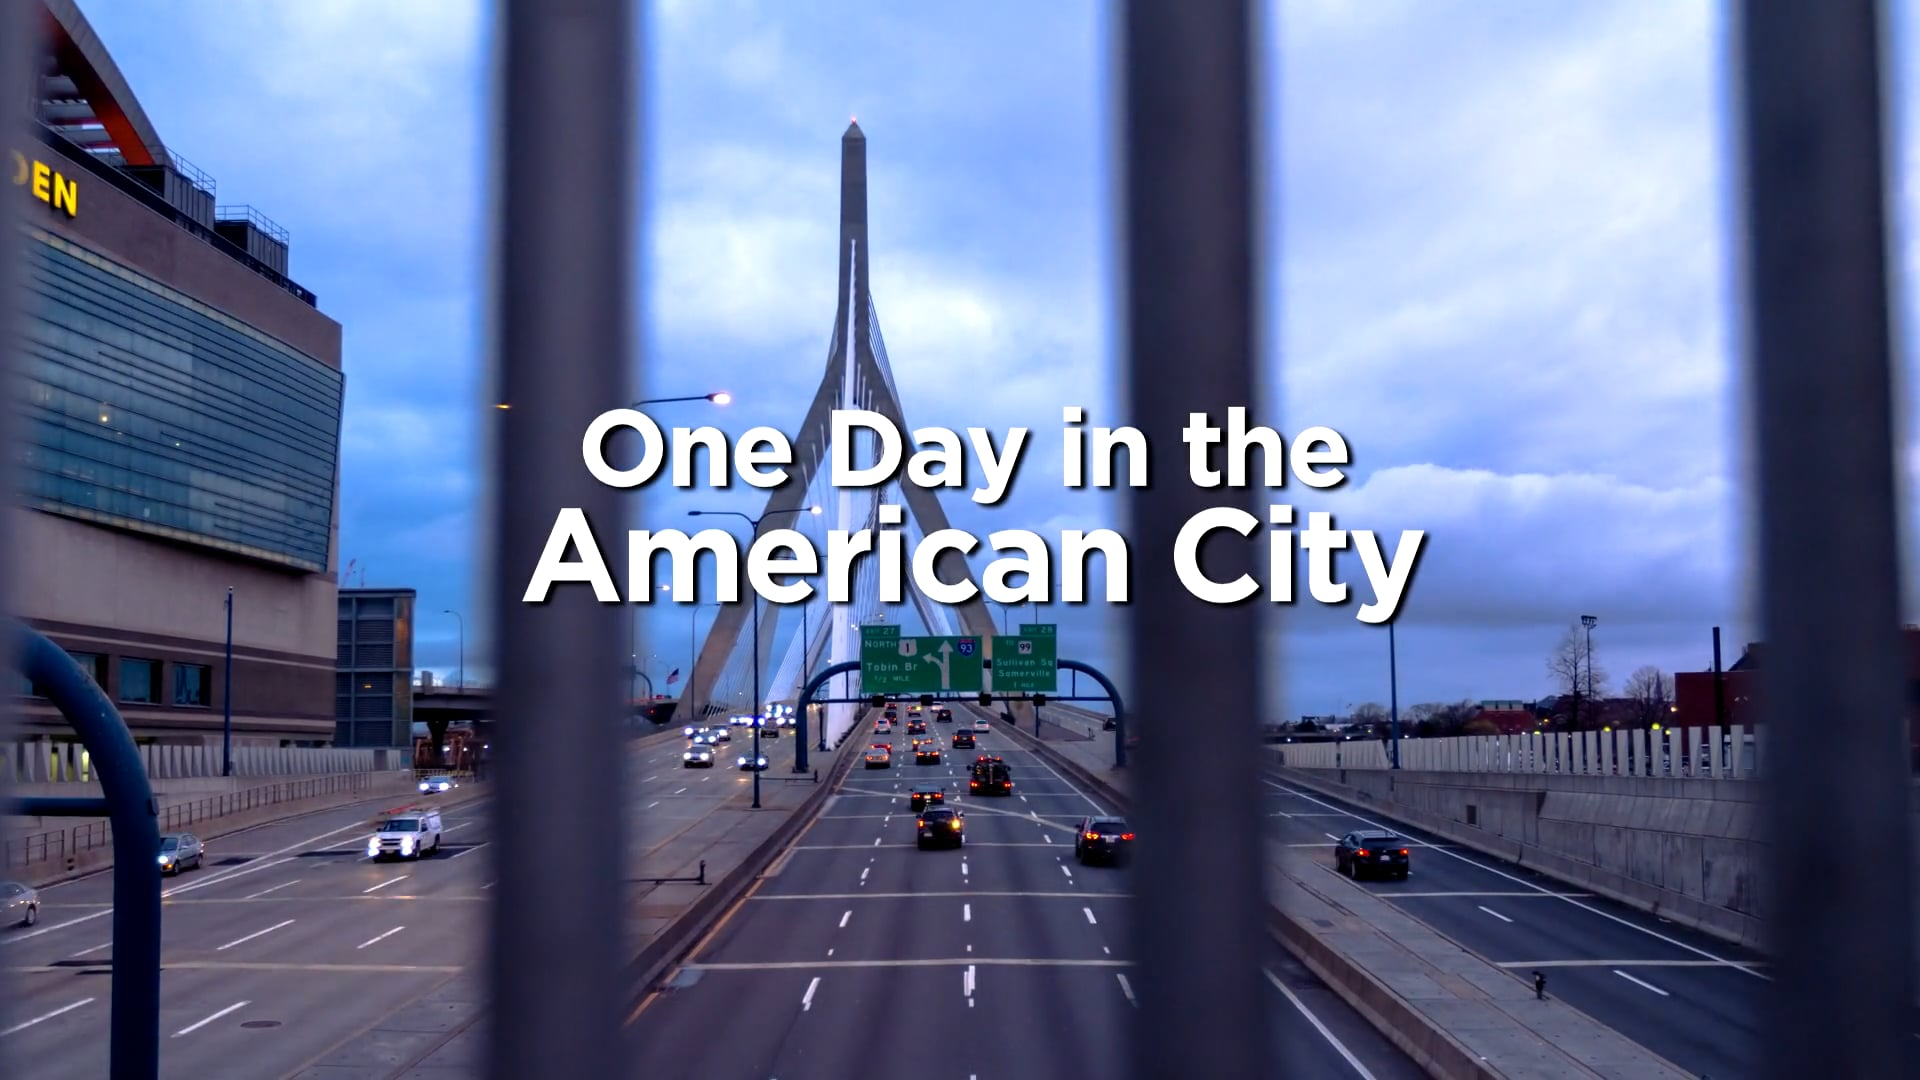 One Day in the American City - PBS Promo